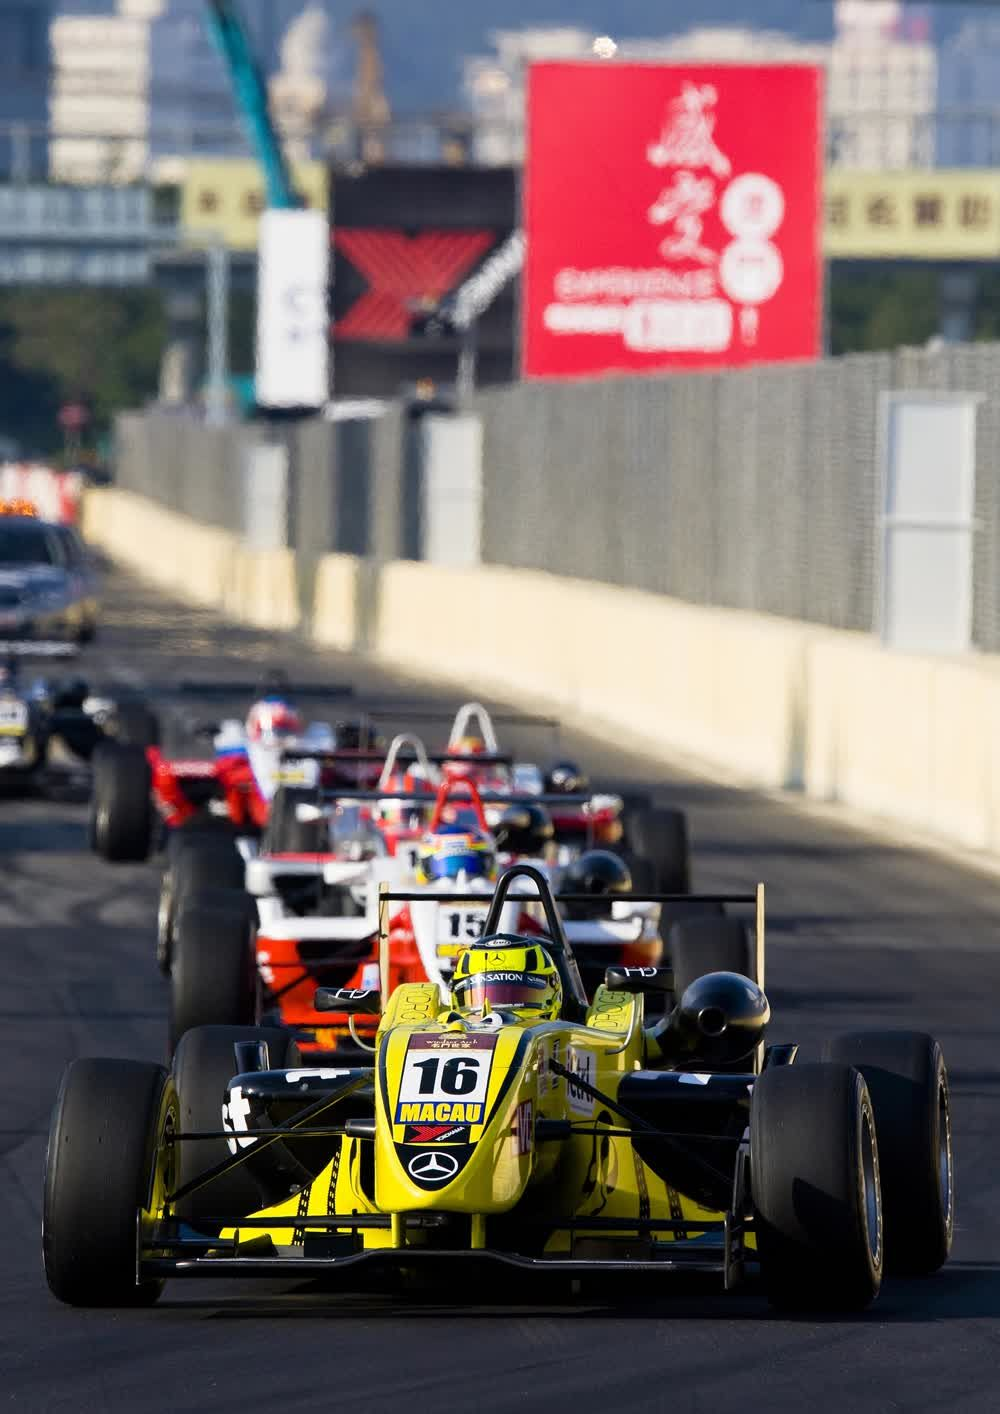 title: Fast and furious formula car Macau